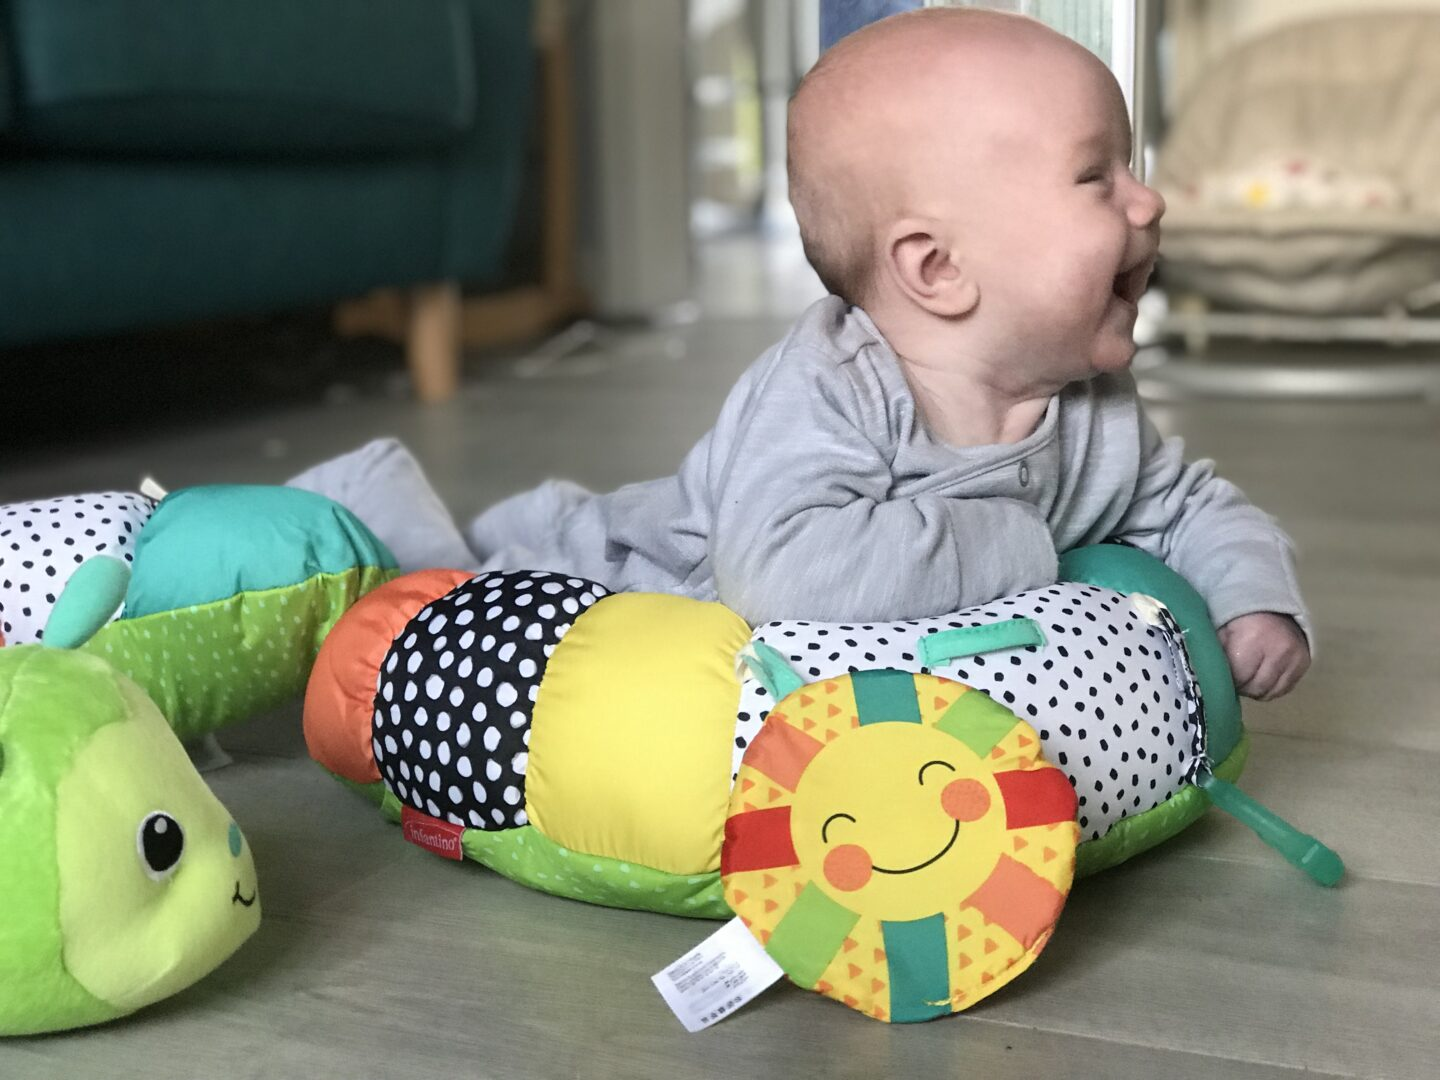 Felix using his Infantino Prop-a-Pillar tummy time support in the lounge, propping himself up and laughing